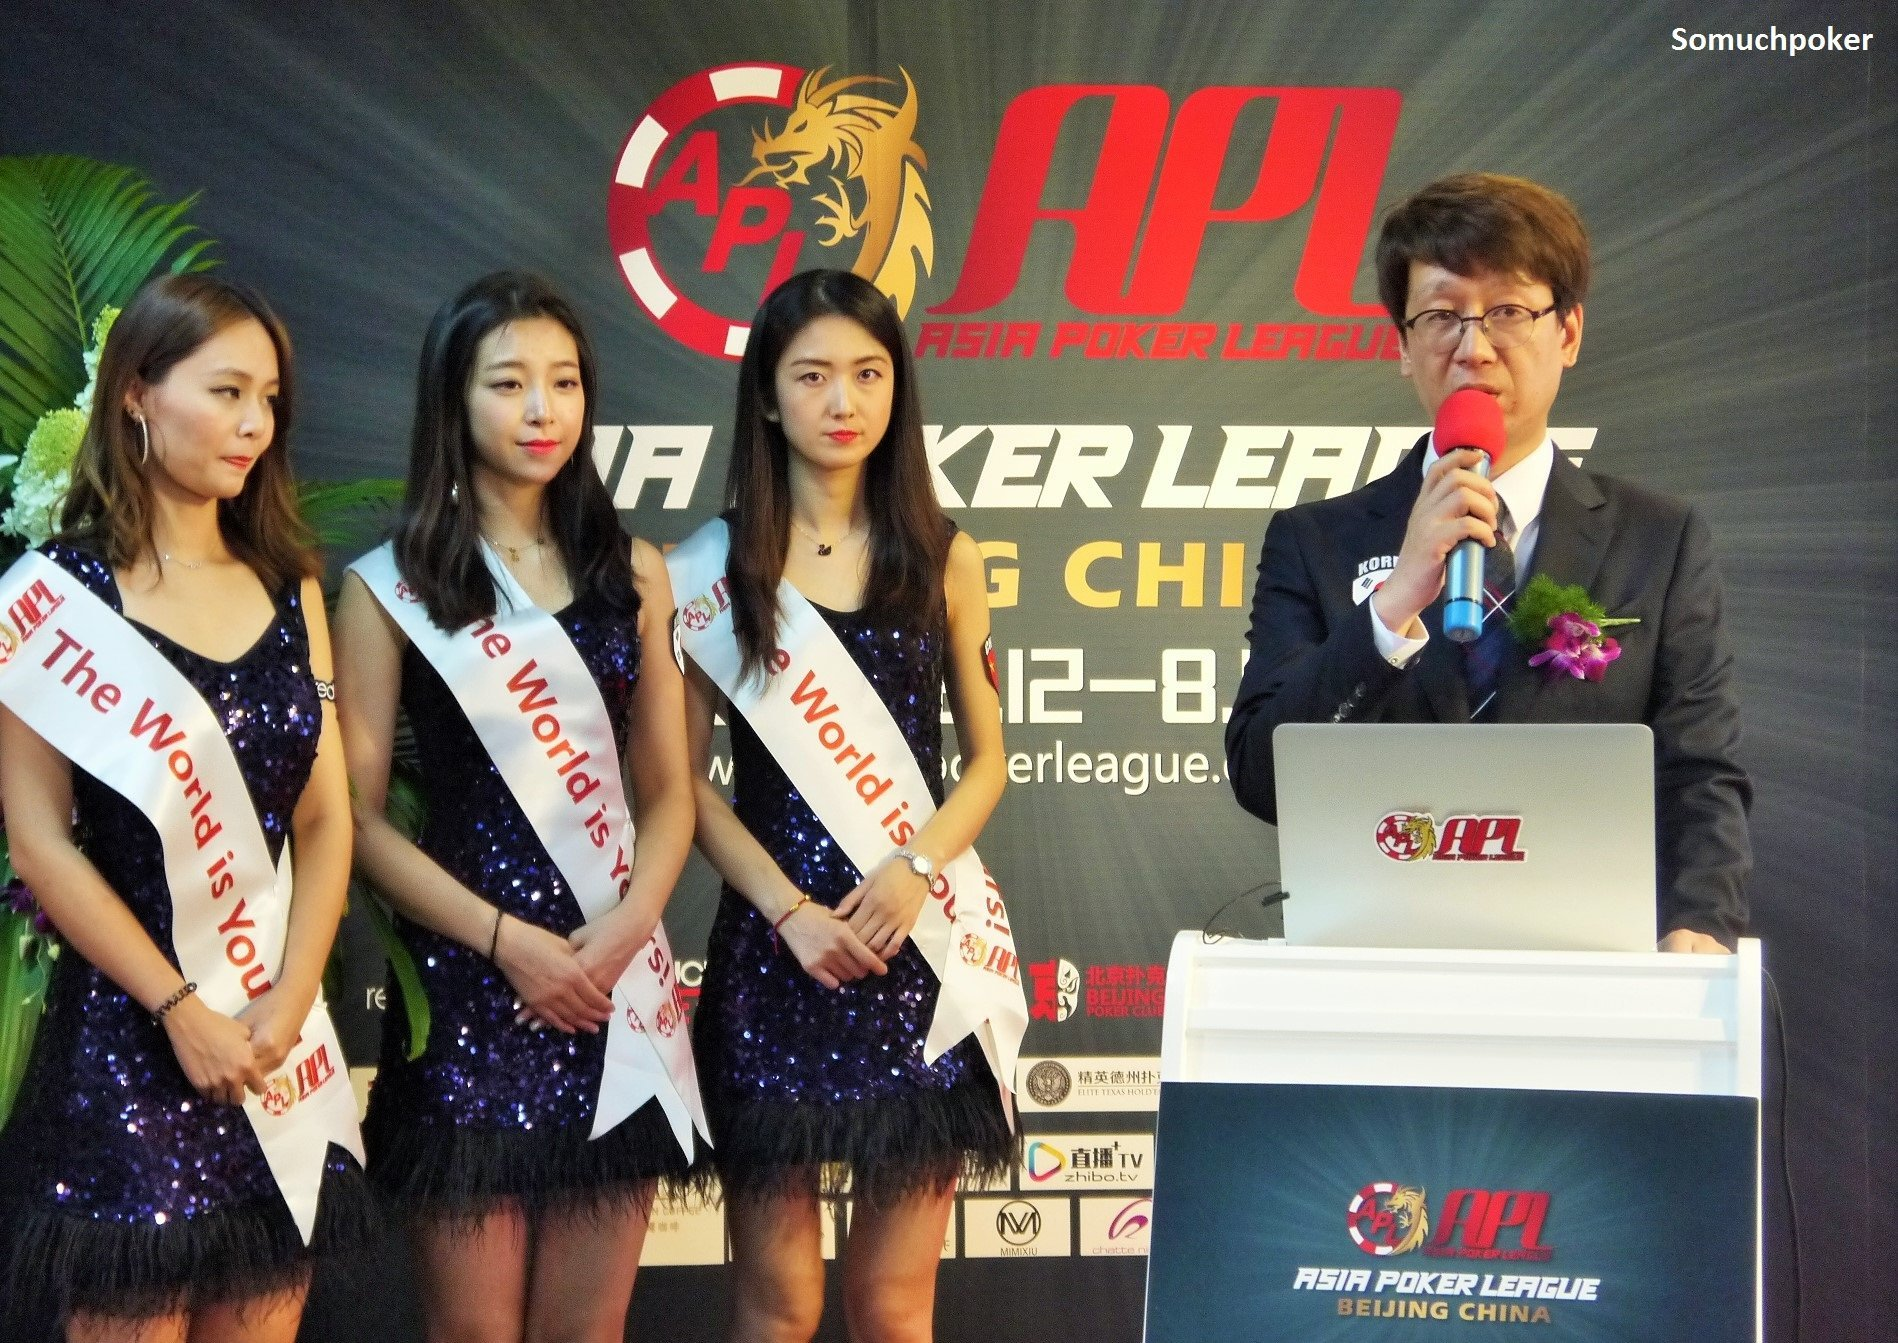 Asia Poker League Makes Debut in Beijing – China